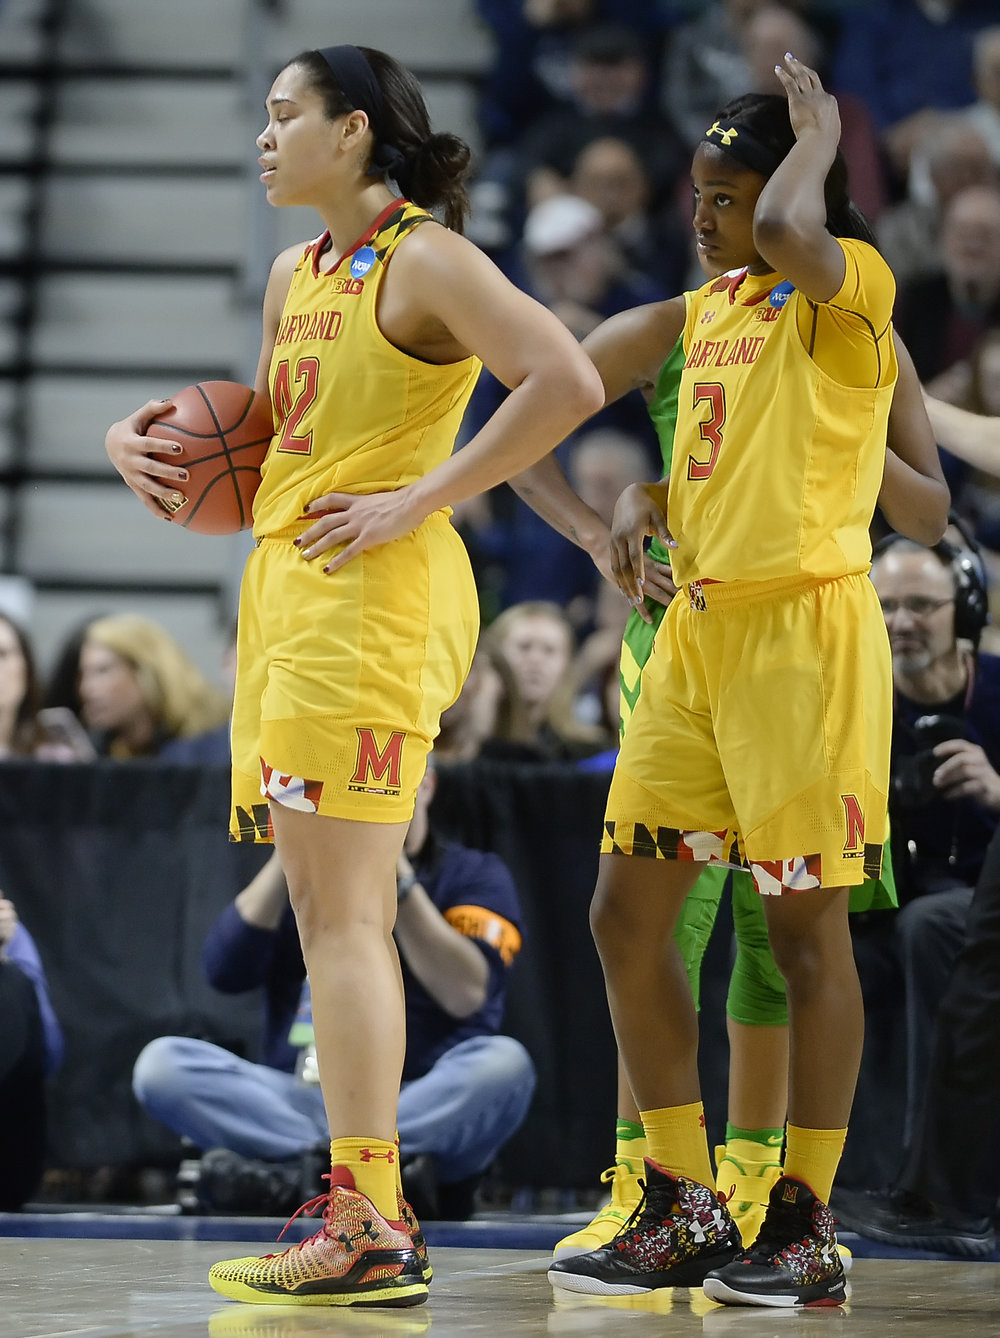 Maryland's Brionna Jones, left, reacts to a foul as Kaila Charles looks on during the second half of a regional semifinal game against Oregon in the NCAA women's college basketball tournament, Saturday, March 25, 2017, in Bridgeport, Conn. (AP Photo/Jessica Hill)